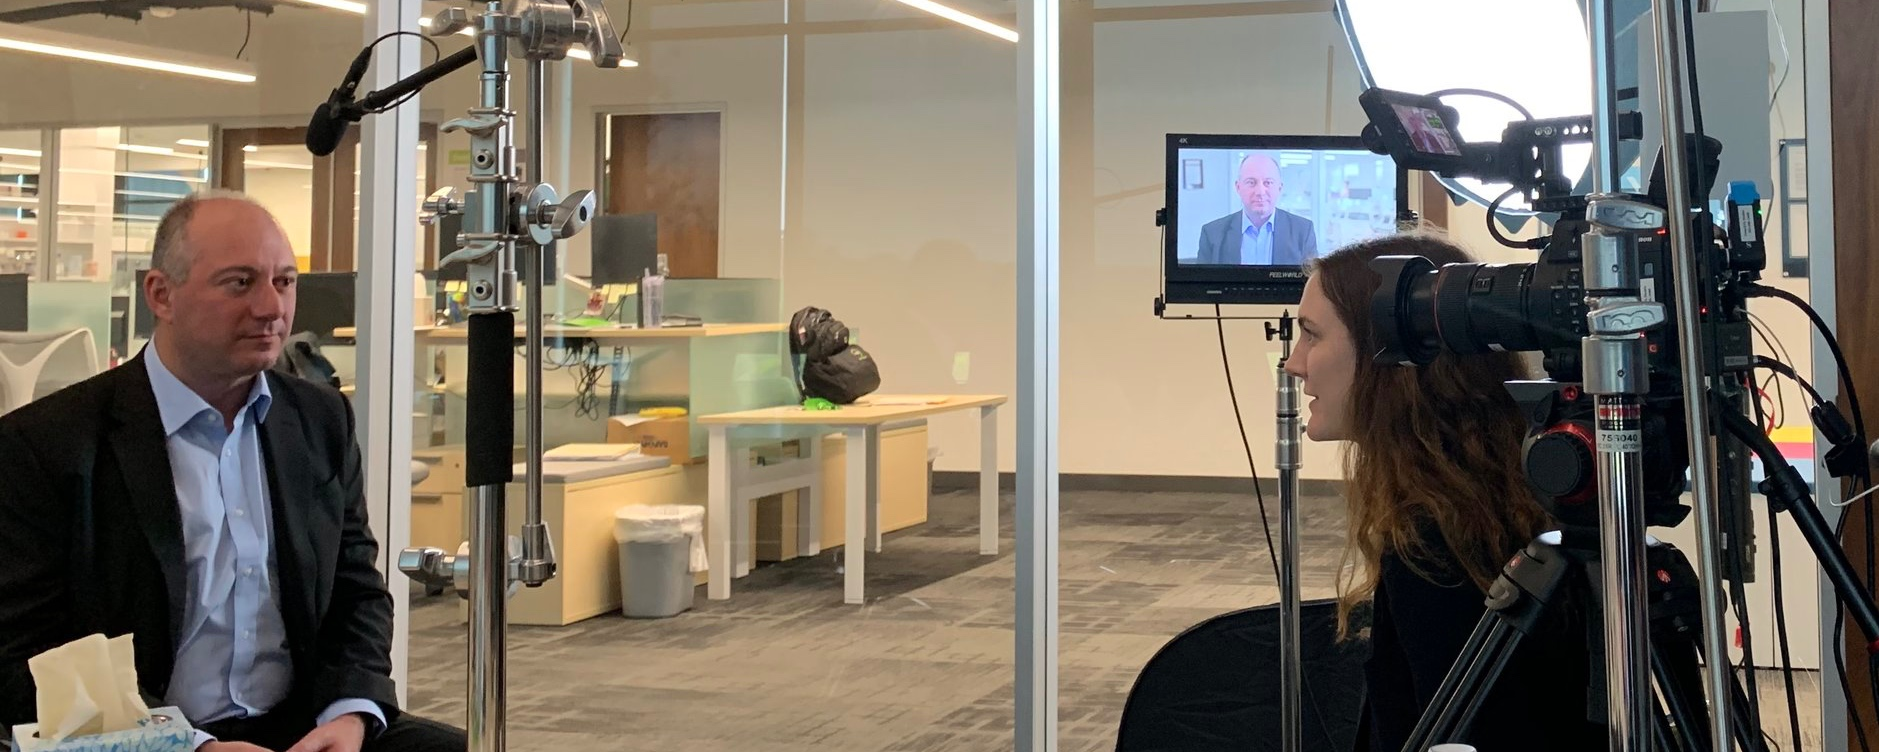 """Here is a BTS image showing our 17"""" client monitor on the set of an interview for an upcoming PBS documentary."""